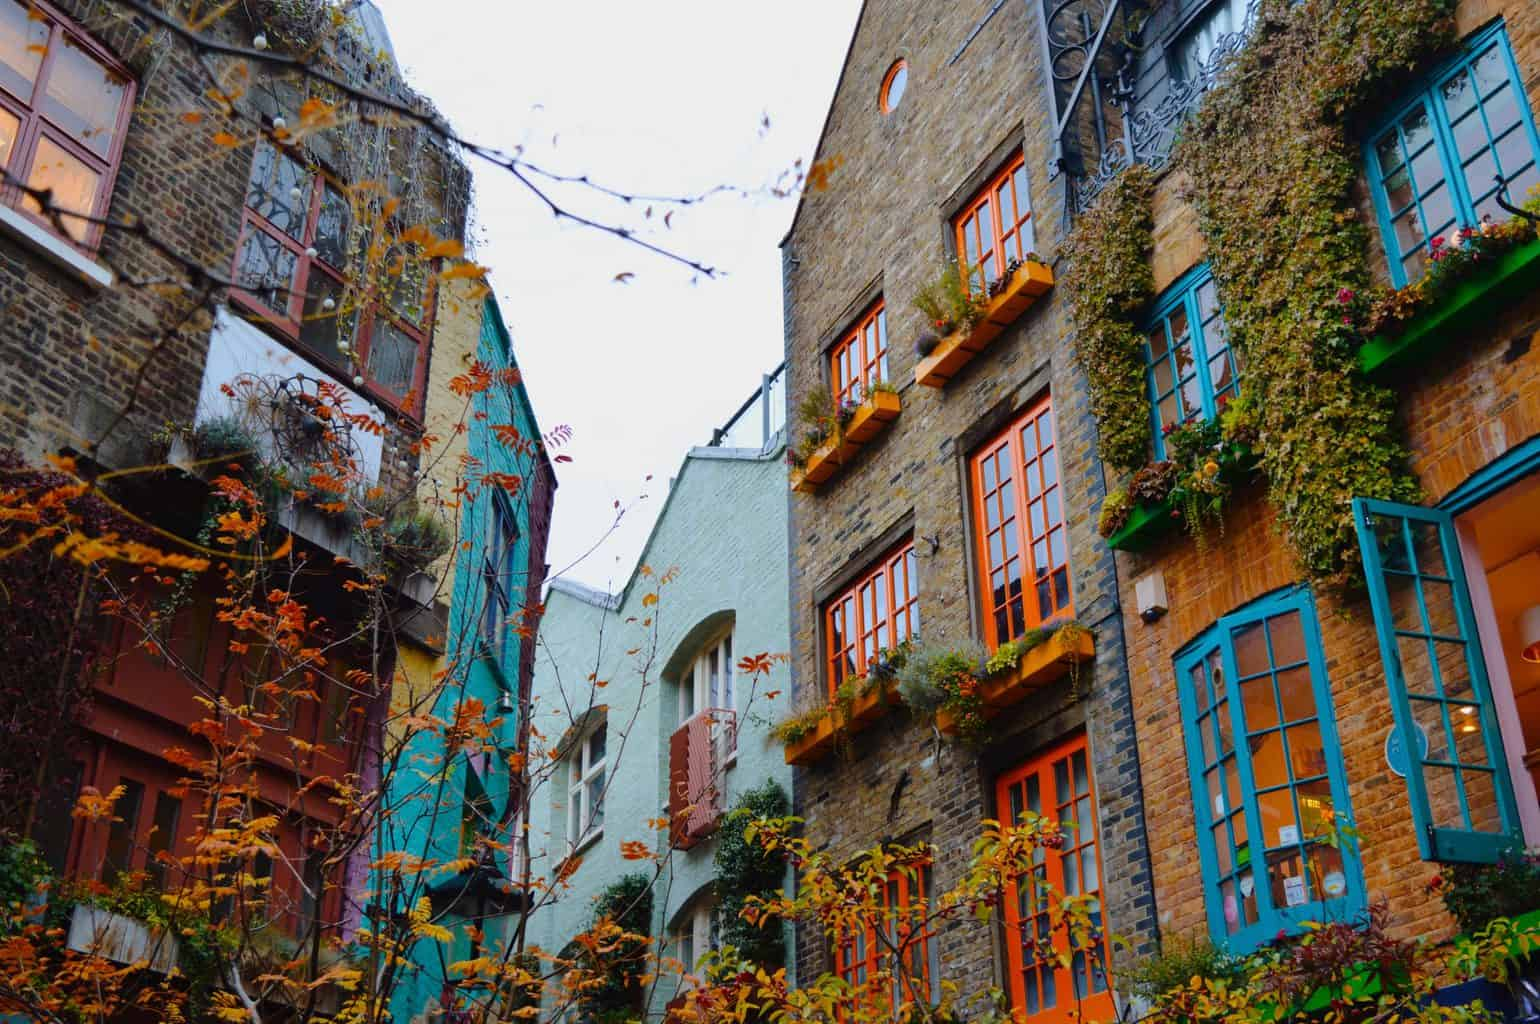 The vibrant colors of London's Neal's Yard, one of the most unusual things to do in London.